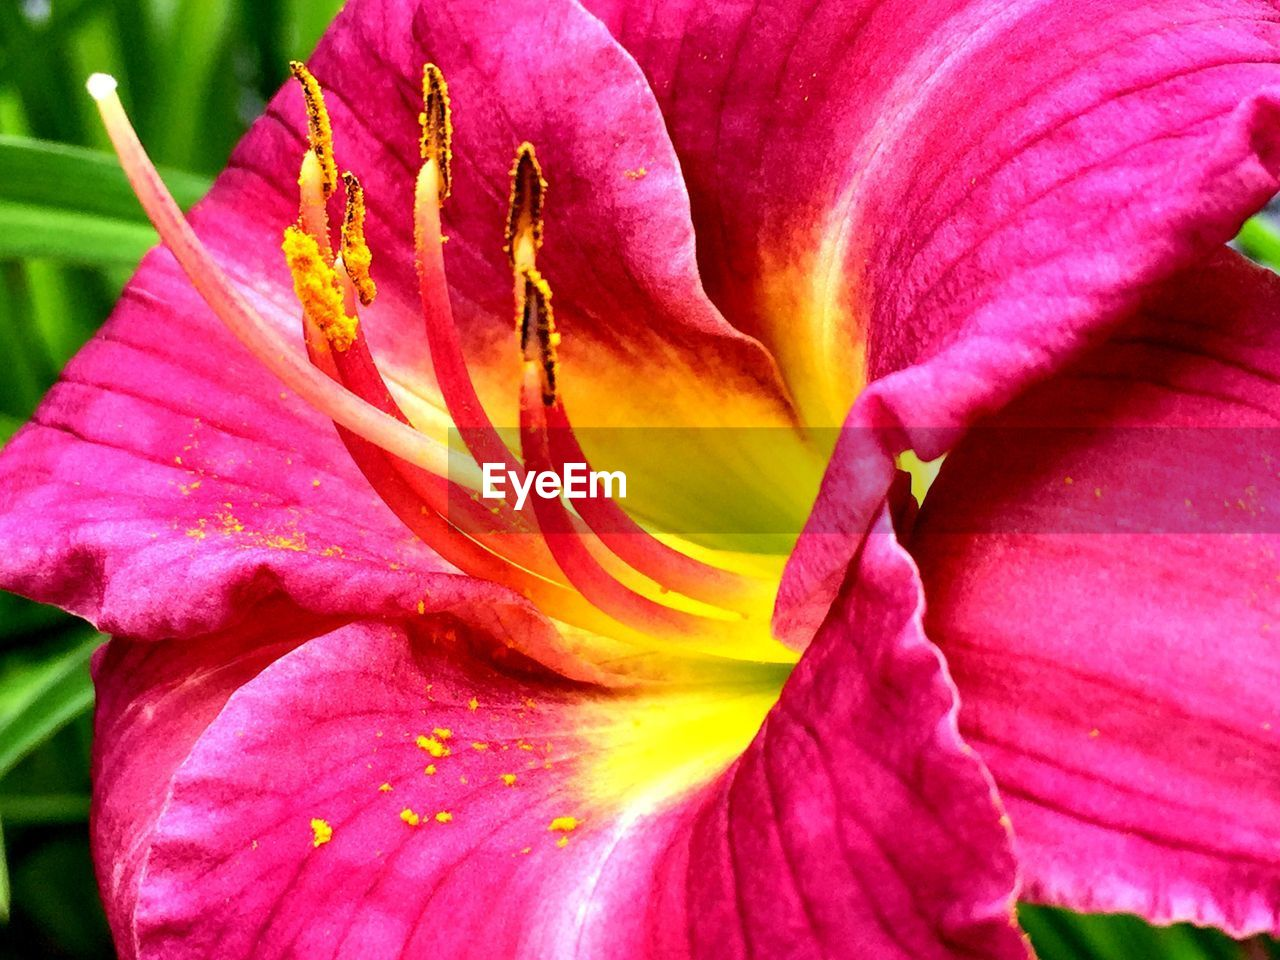 flower, petal, beauty in nature, fragility, nature, flower head, growth, freshness, pink color, no people, close-up, backgrounds, full frame, stamen, outdoors, blooming, plant, day, day lily